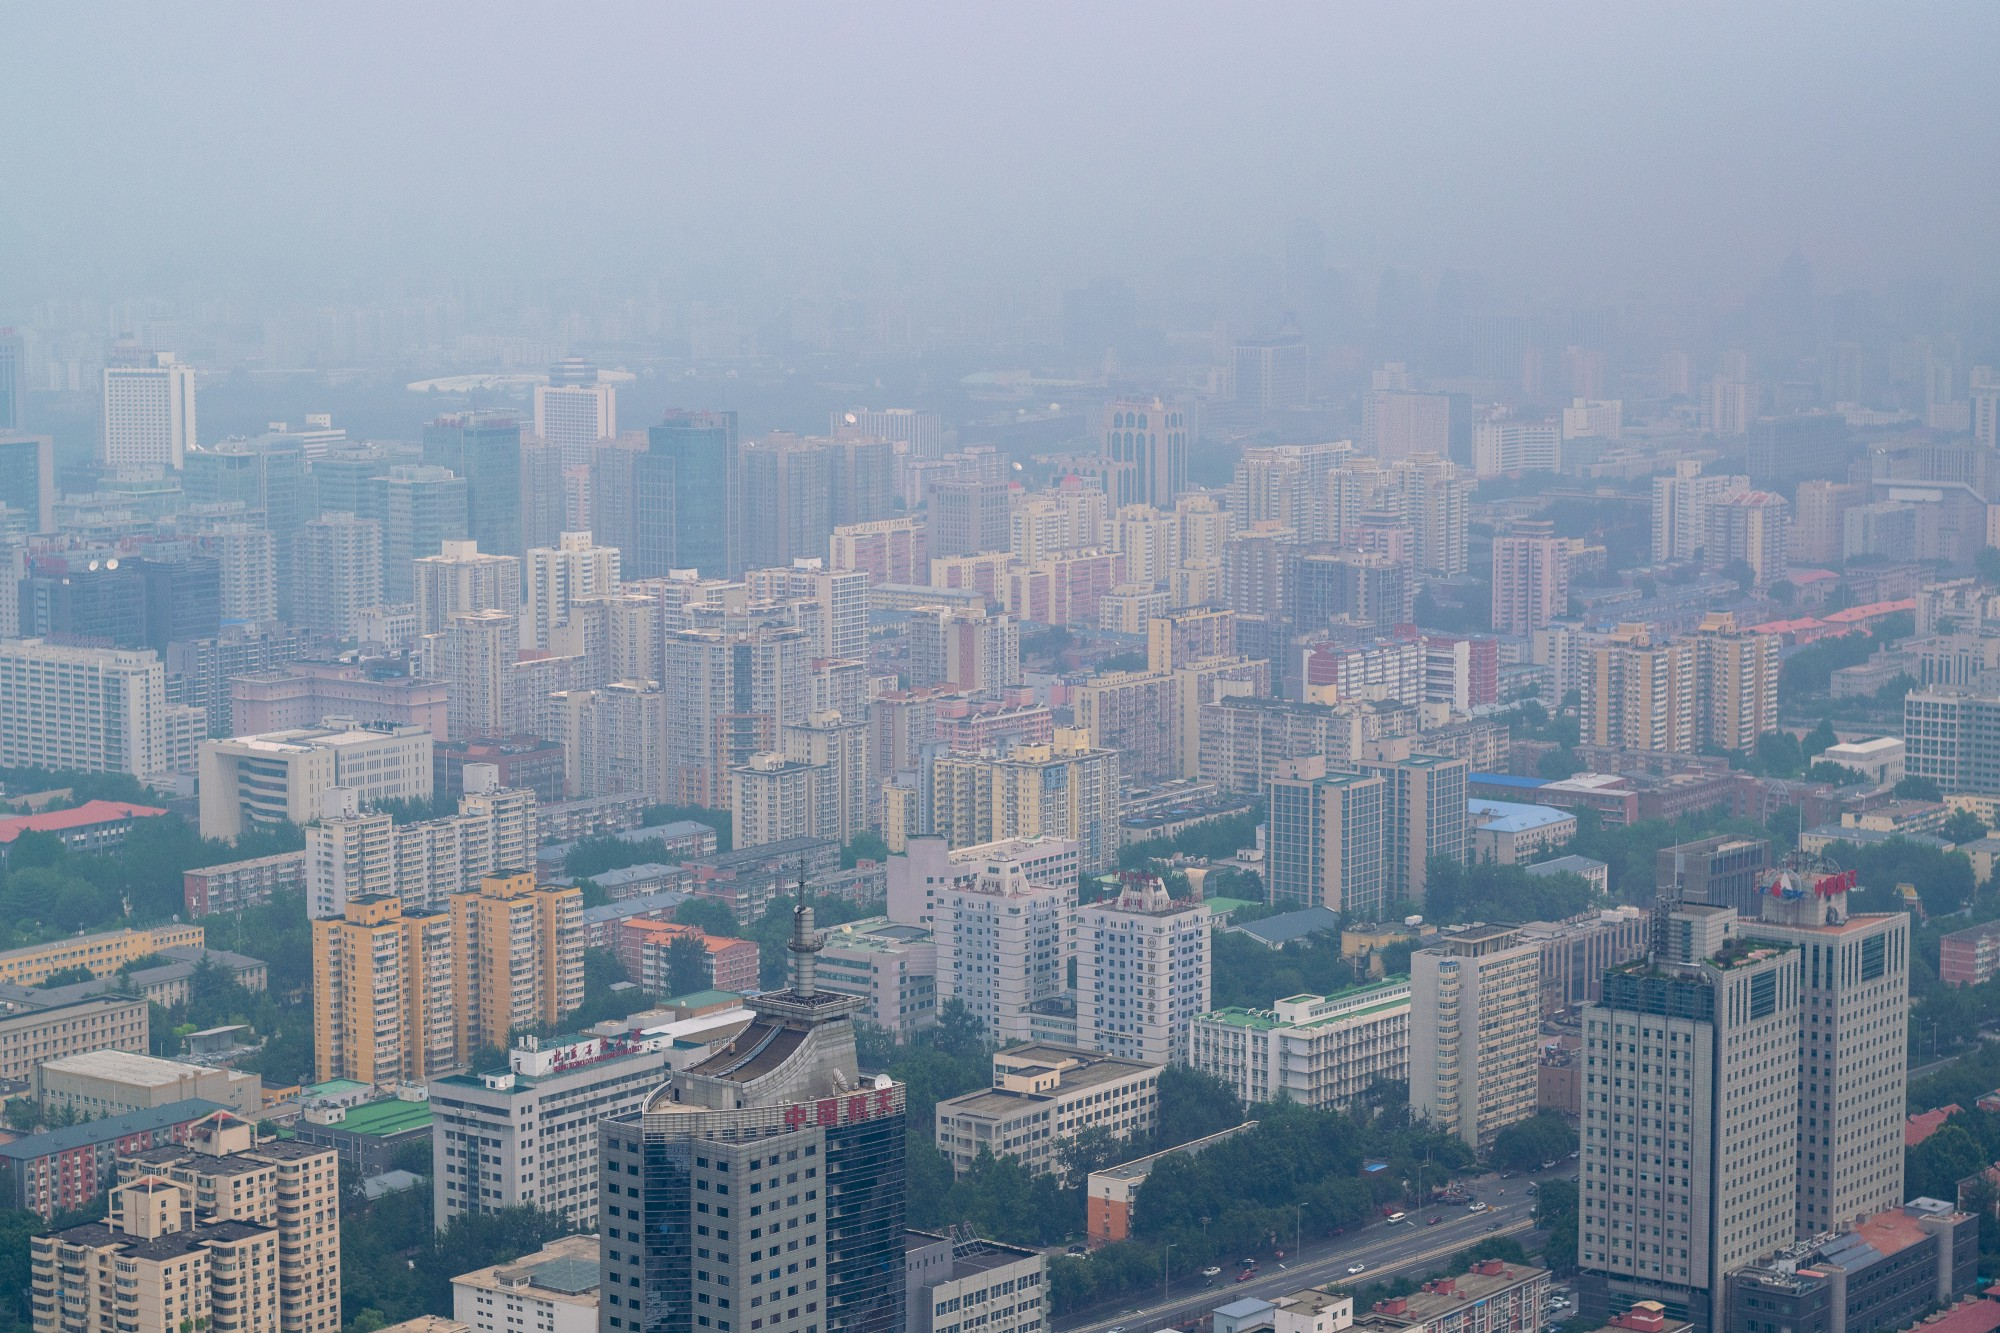 A drone view of developed city with air pollution